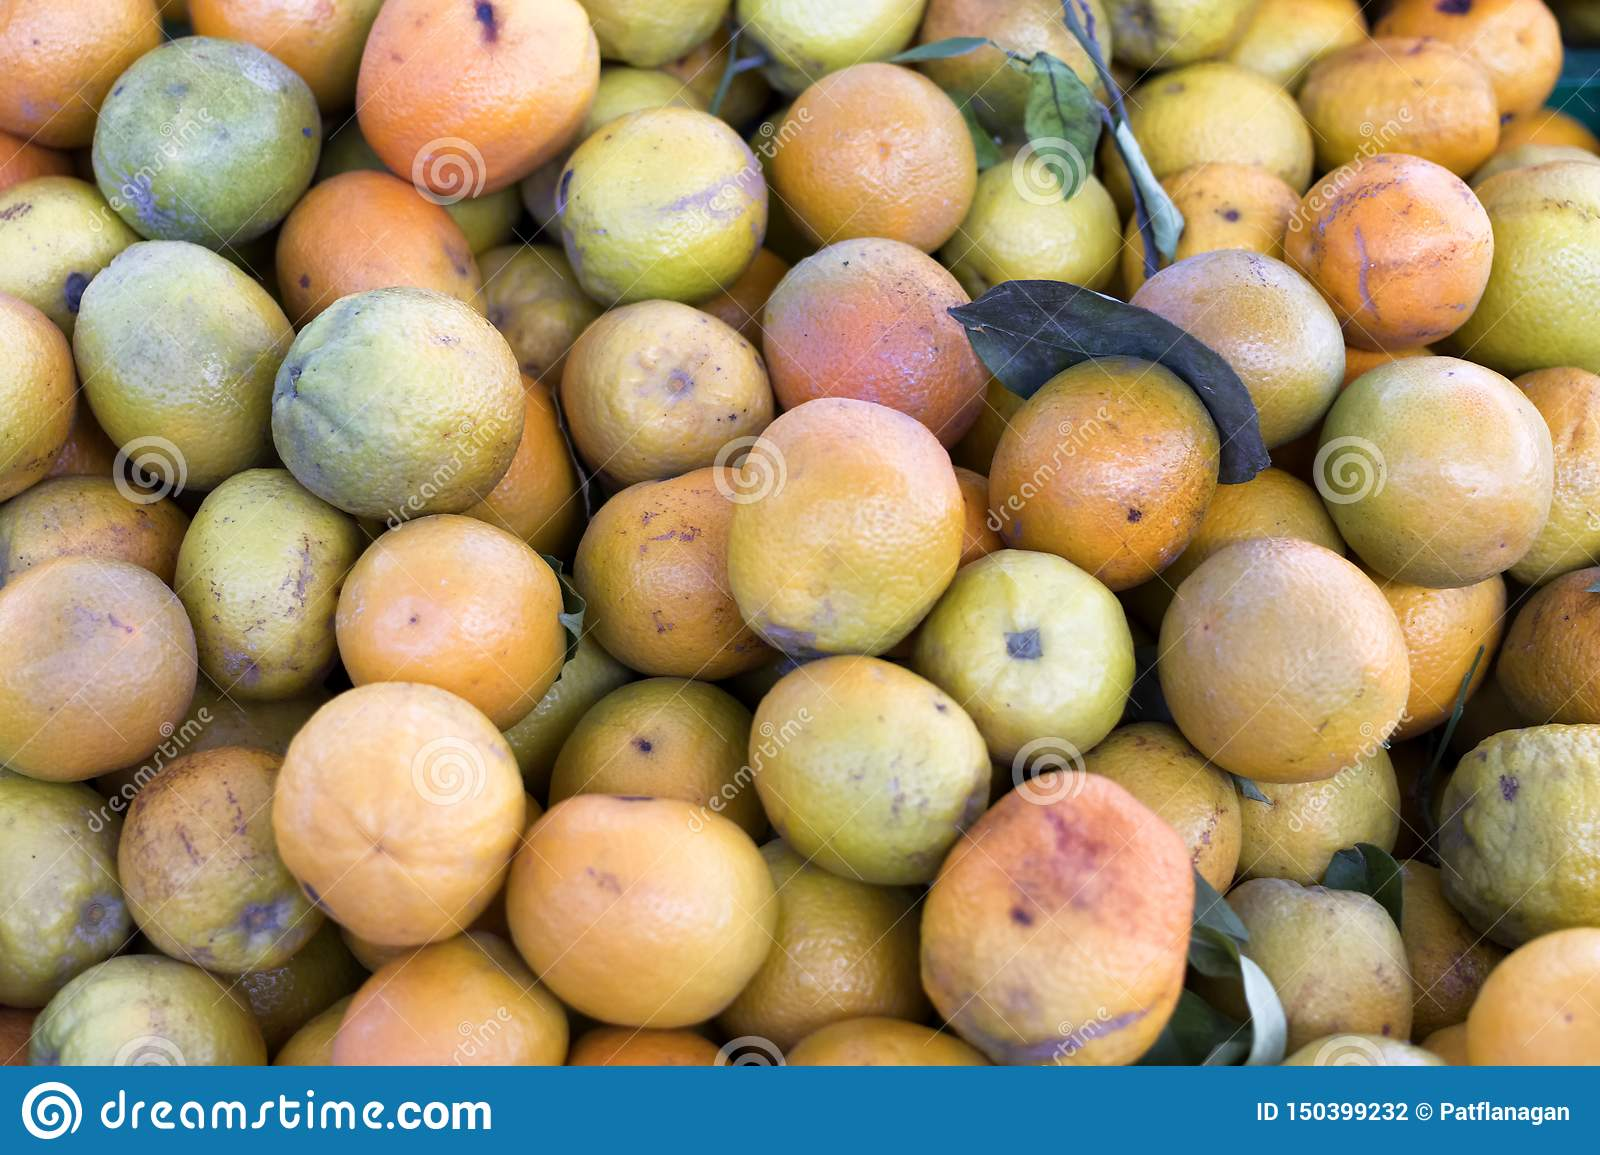 Collection of oranges from a Spanish orange grove